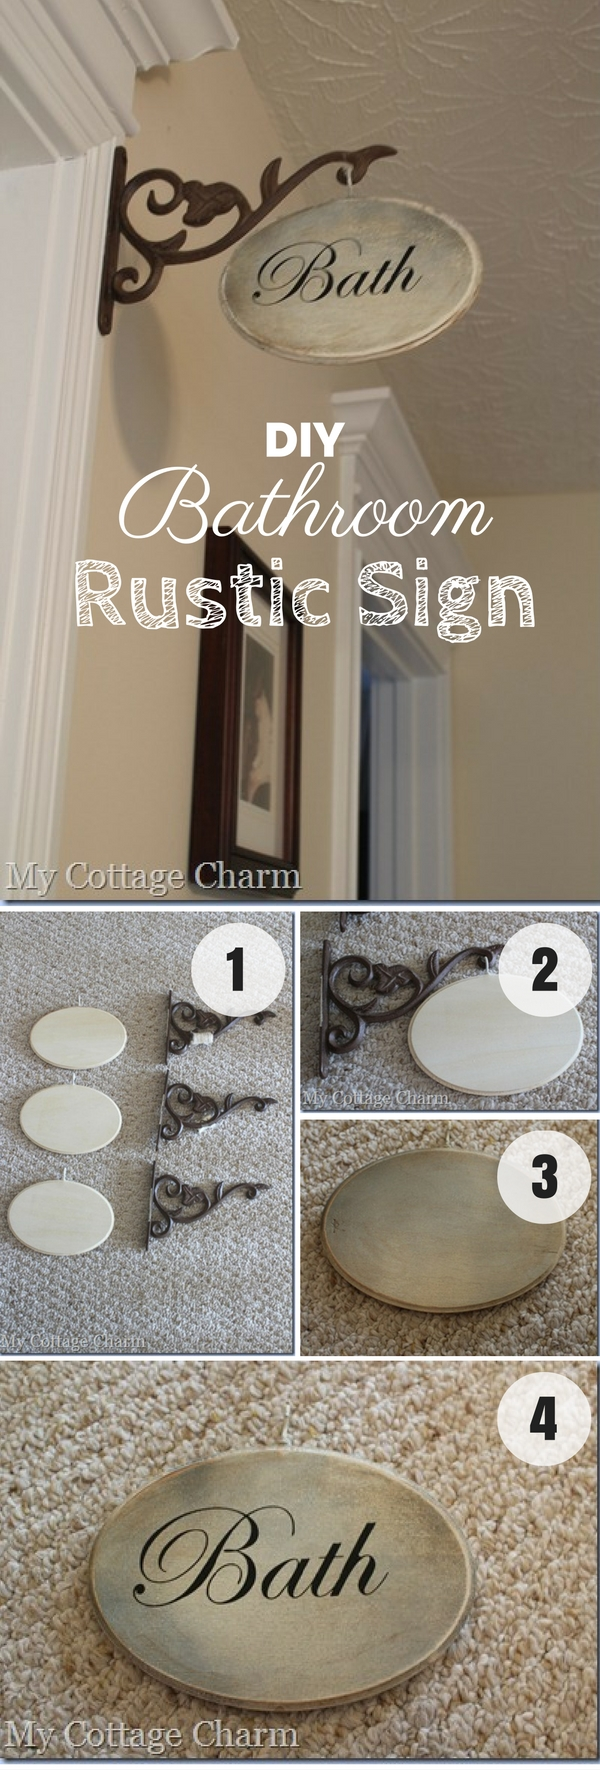 #DIY Rustic Bathroom Sign for rustic bathroom decor #bathroomdecor